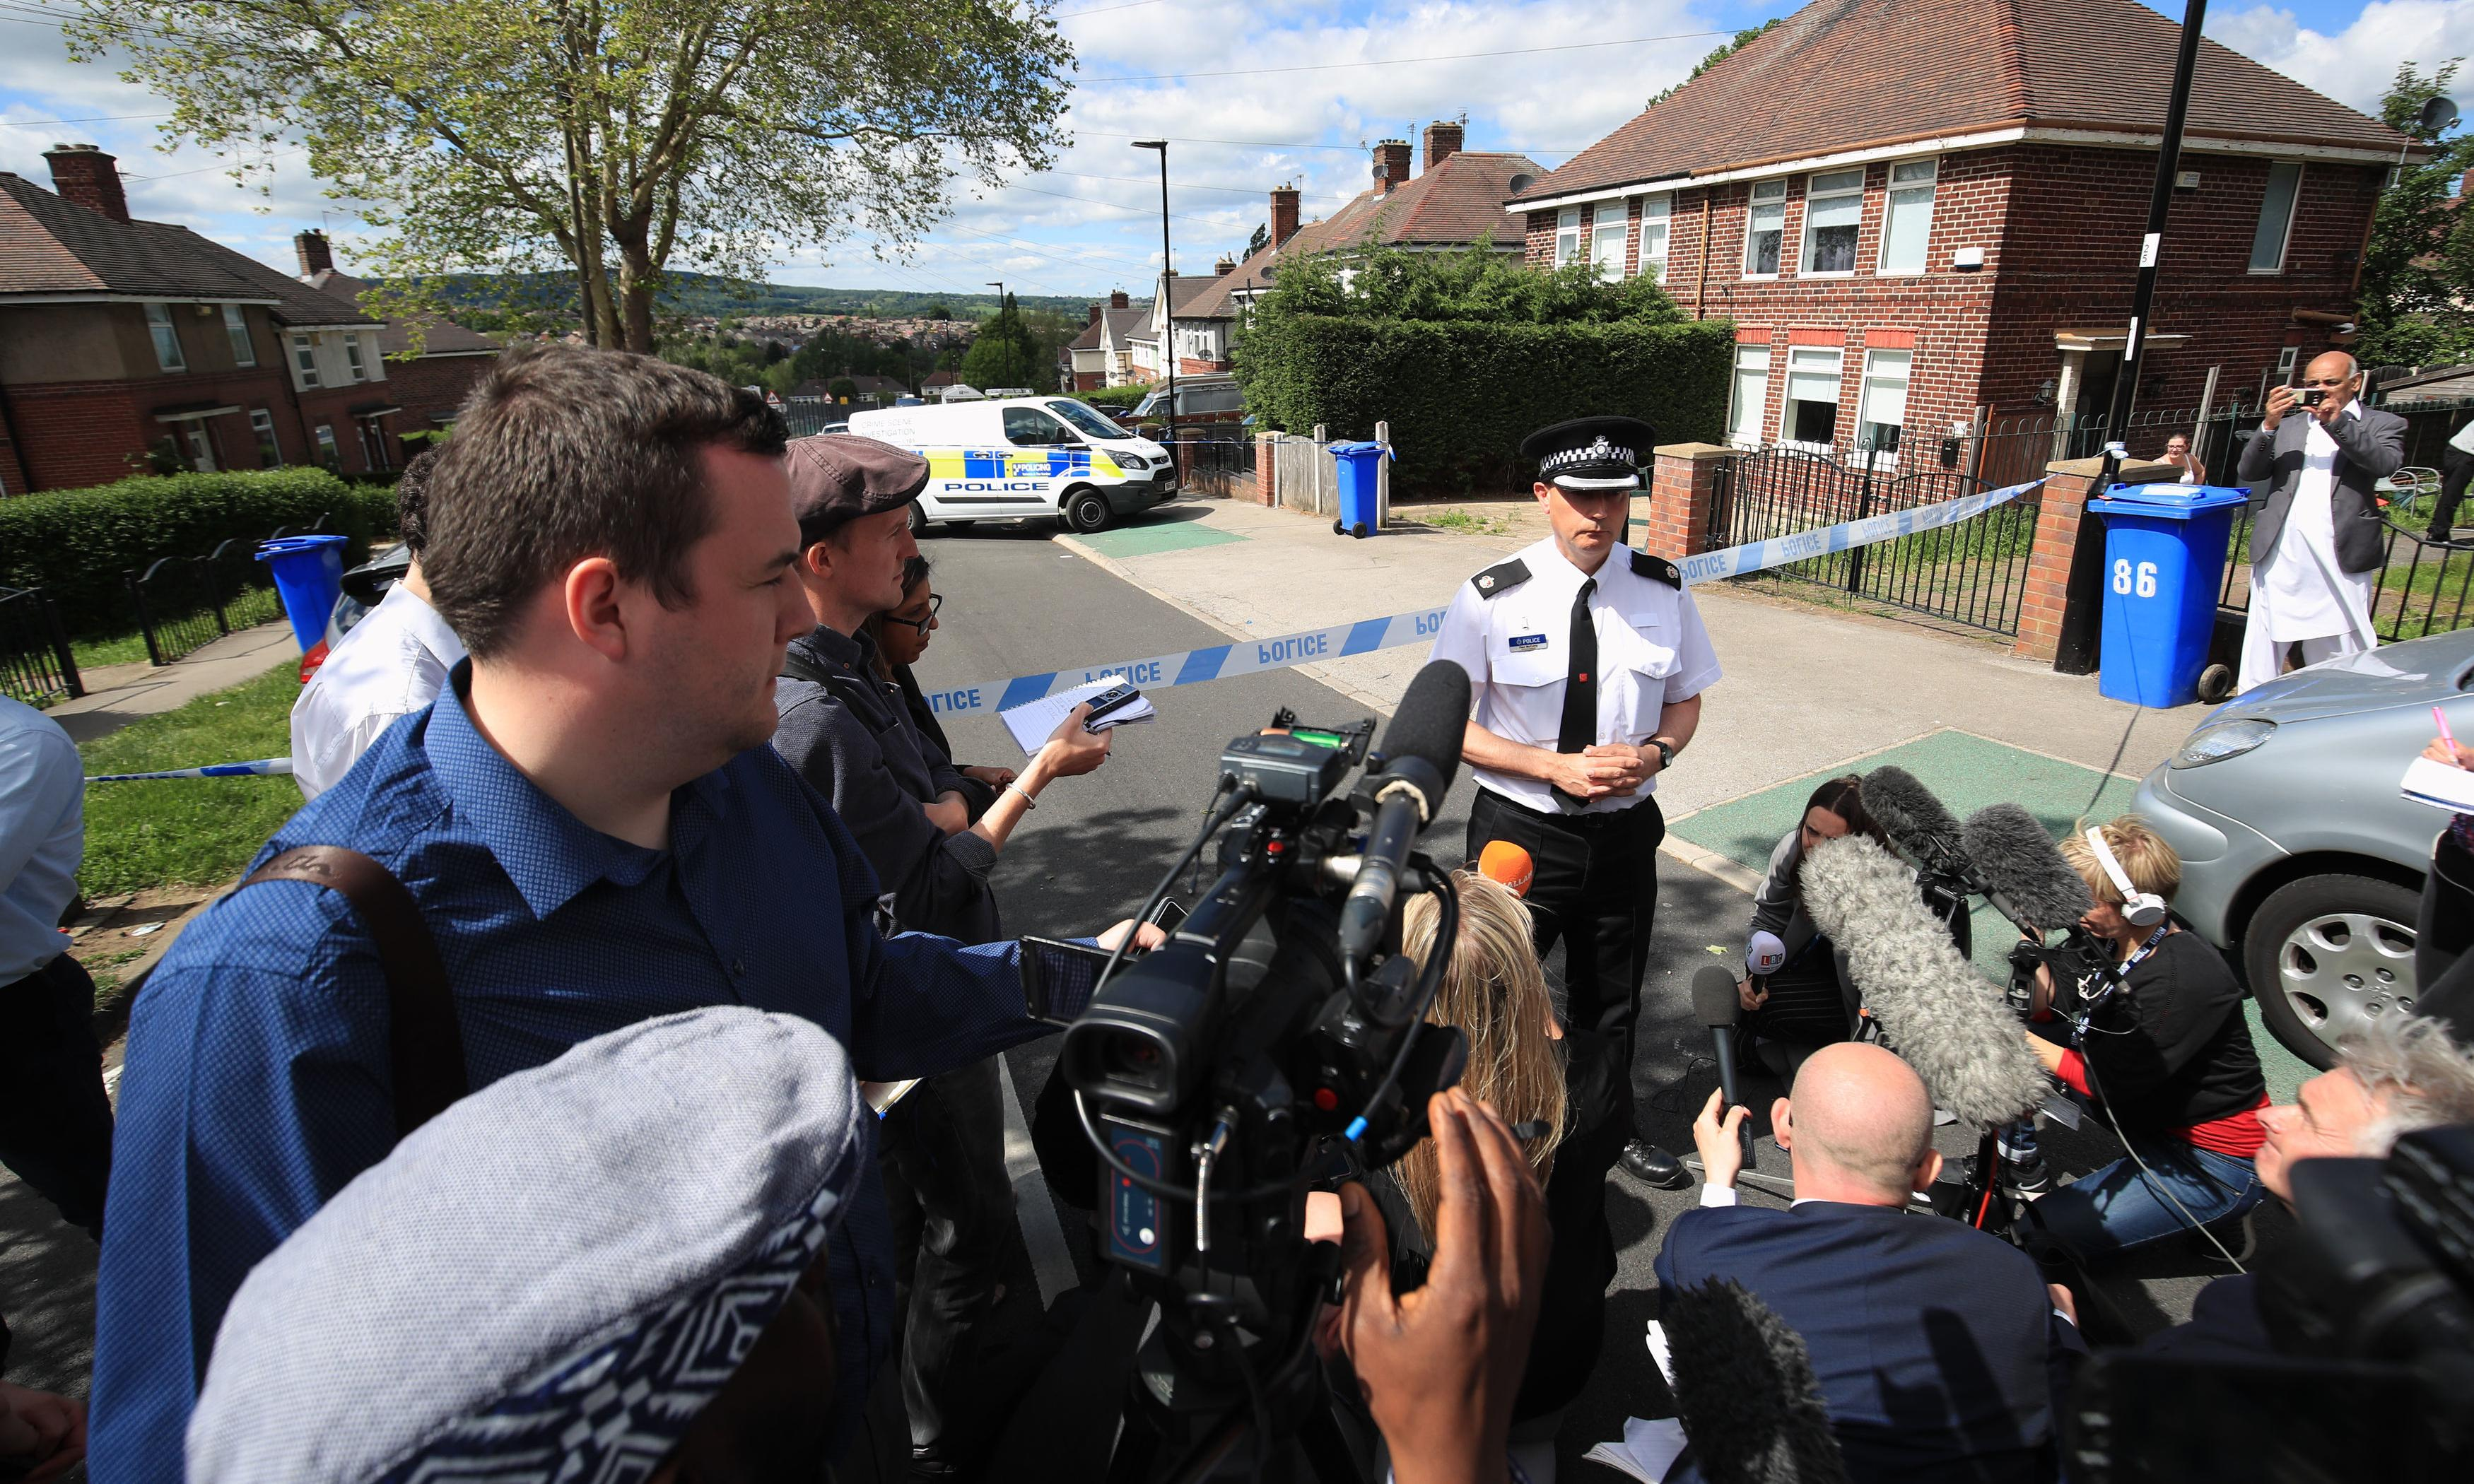 Sheffield incident: four rescued children released from hospital